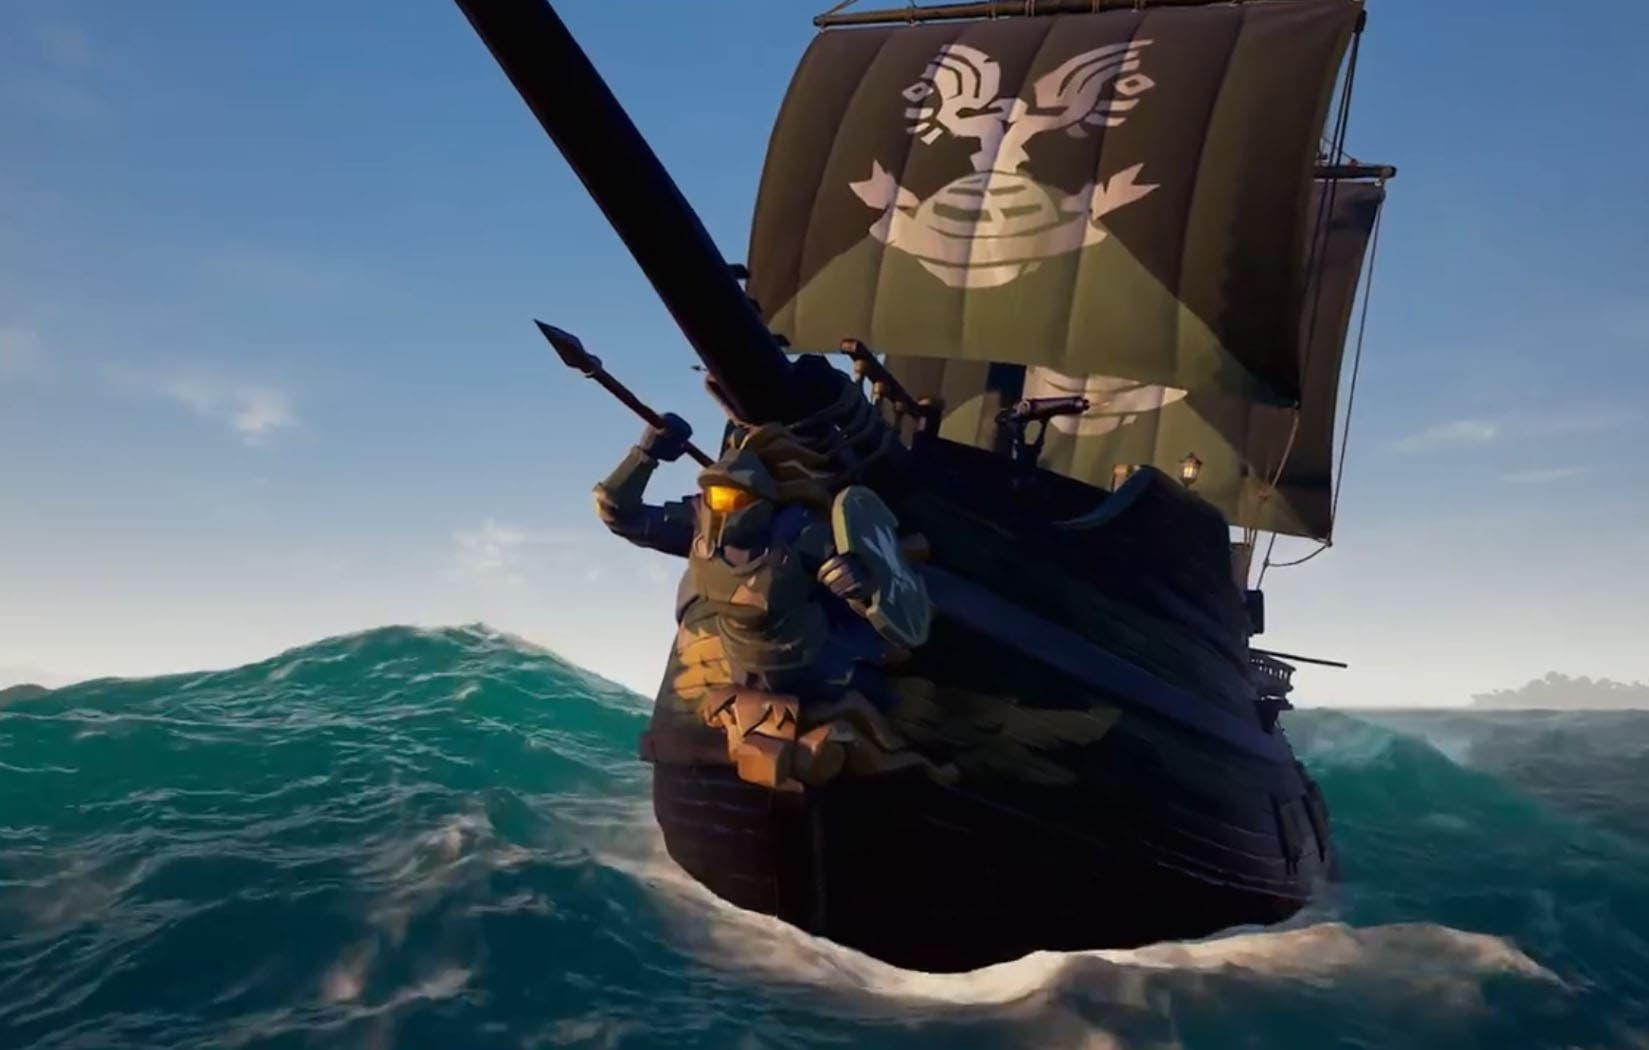 Sea of Thieves anticipa la llegada de actualizaciones por temporadas con Plunder Pass 3